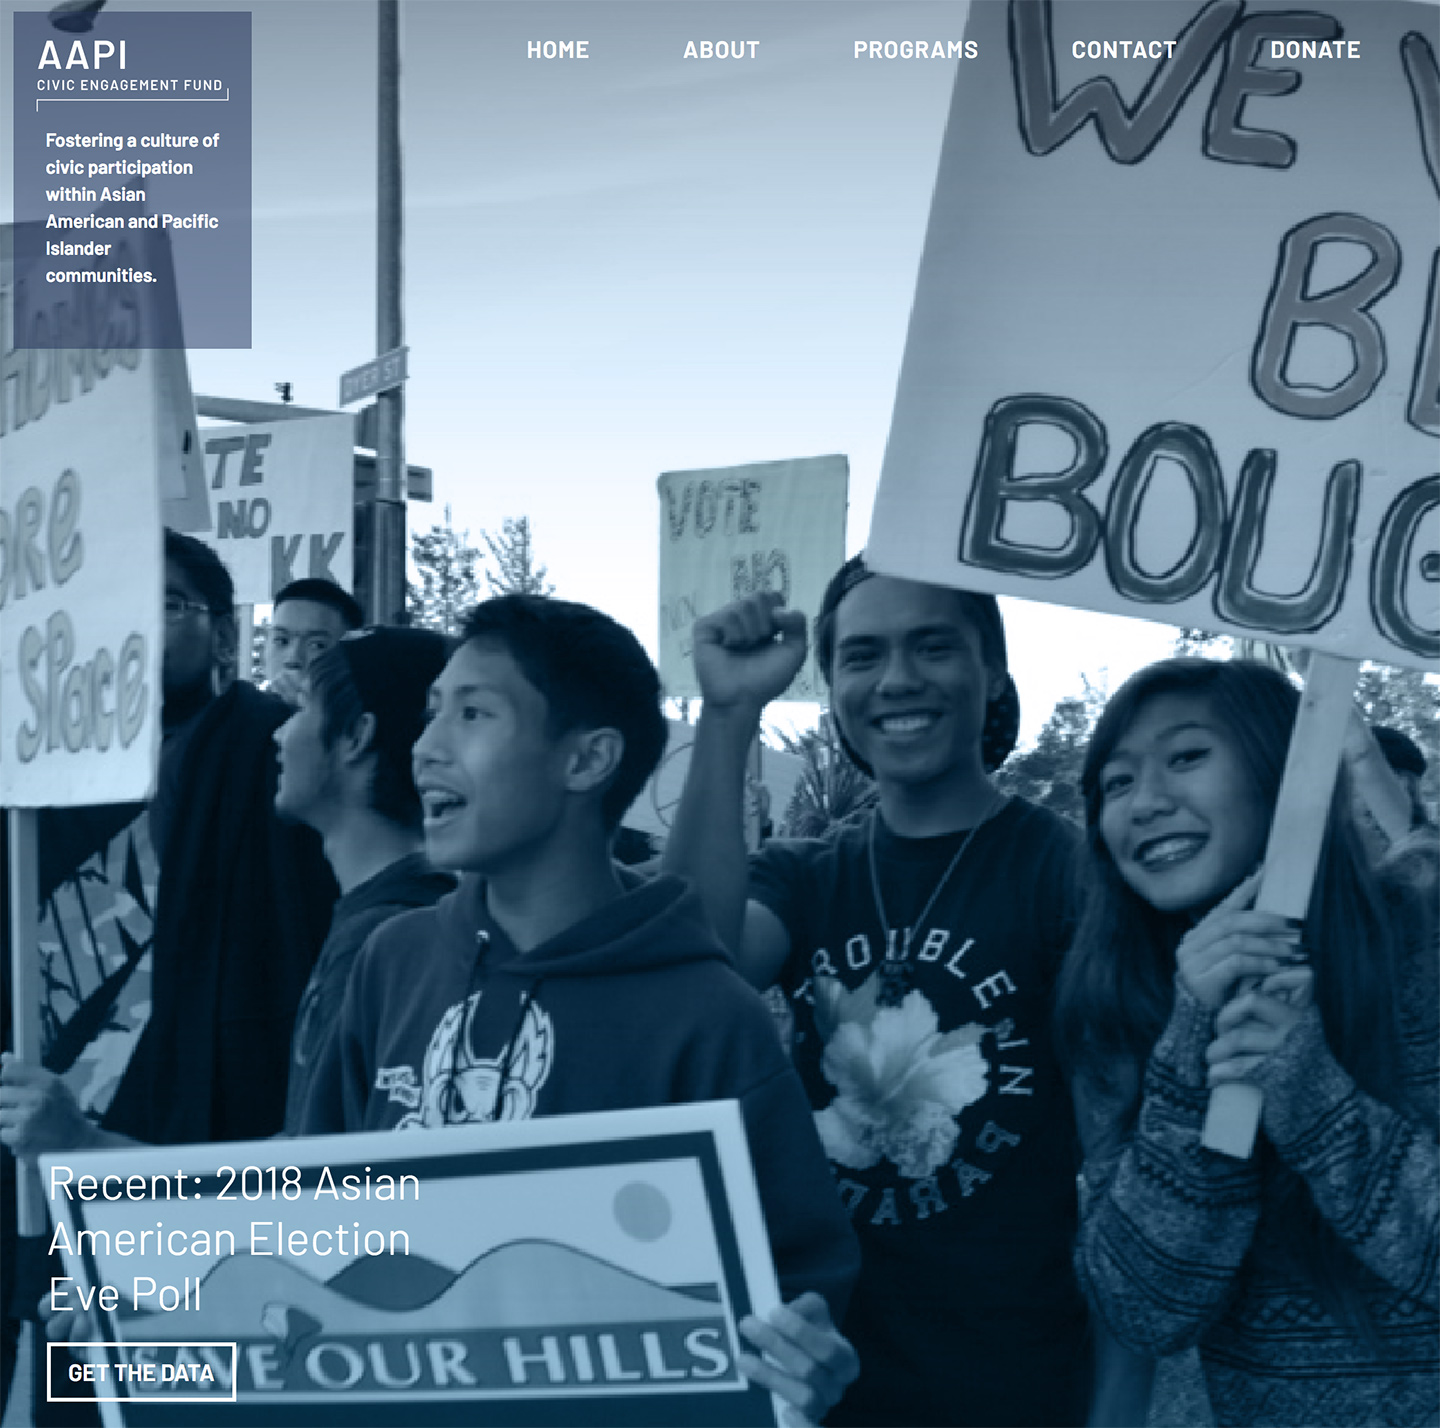 Site Overhaul for Asian American and Pacific Islander Civic Engagement Fund (AAPI)!